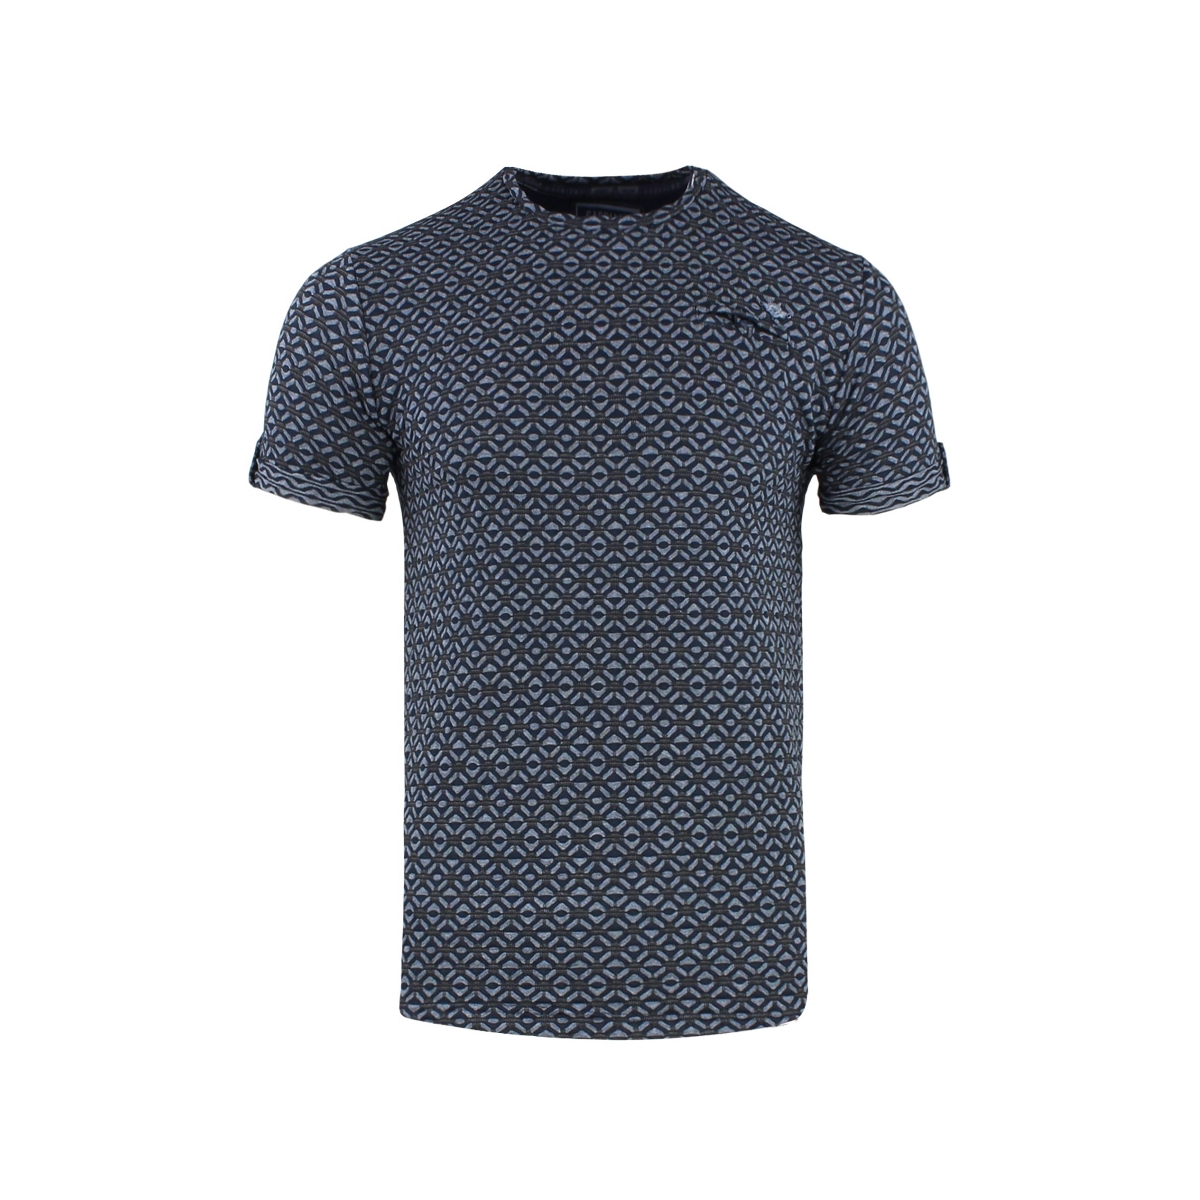 t shirt 15172 gabbiano t-shirt navy